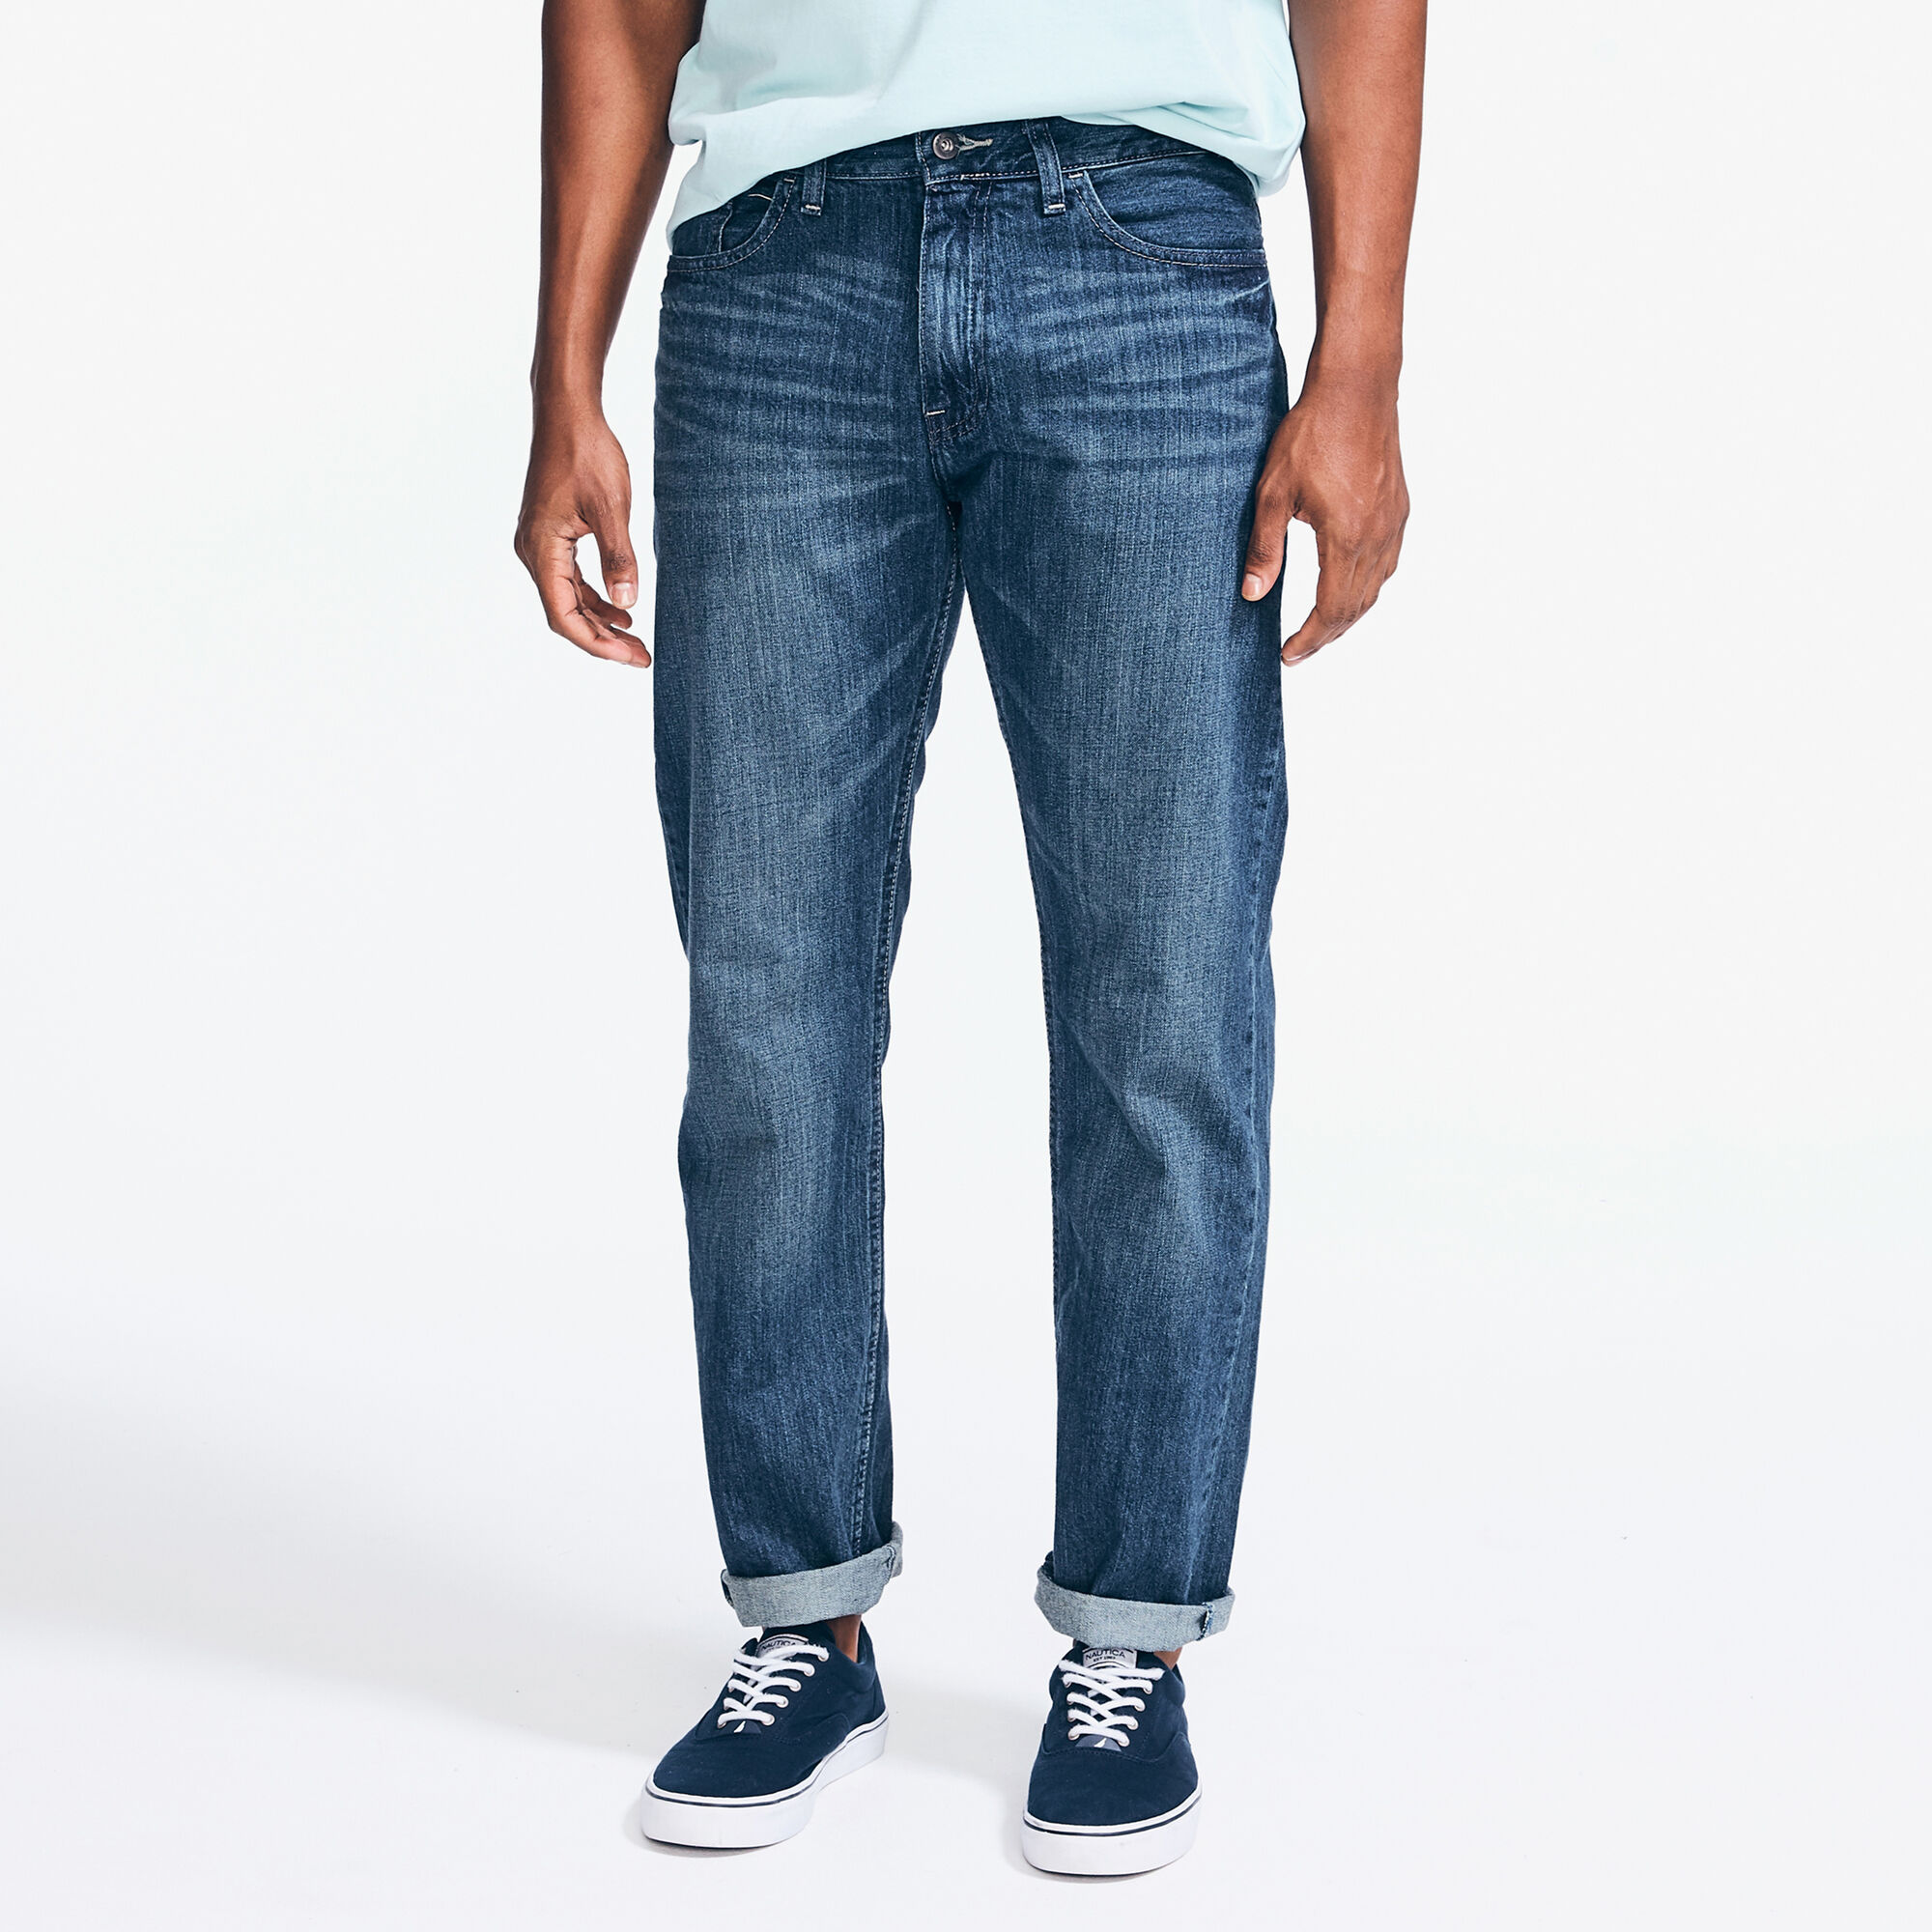 2-Pack Nautica Men's Relaxed Fit Denim Jeans